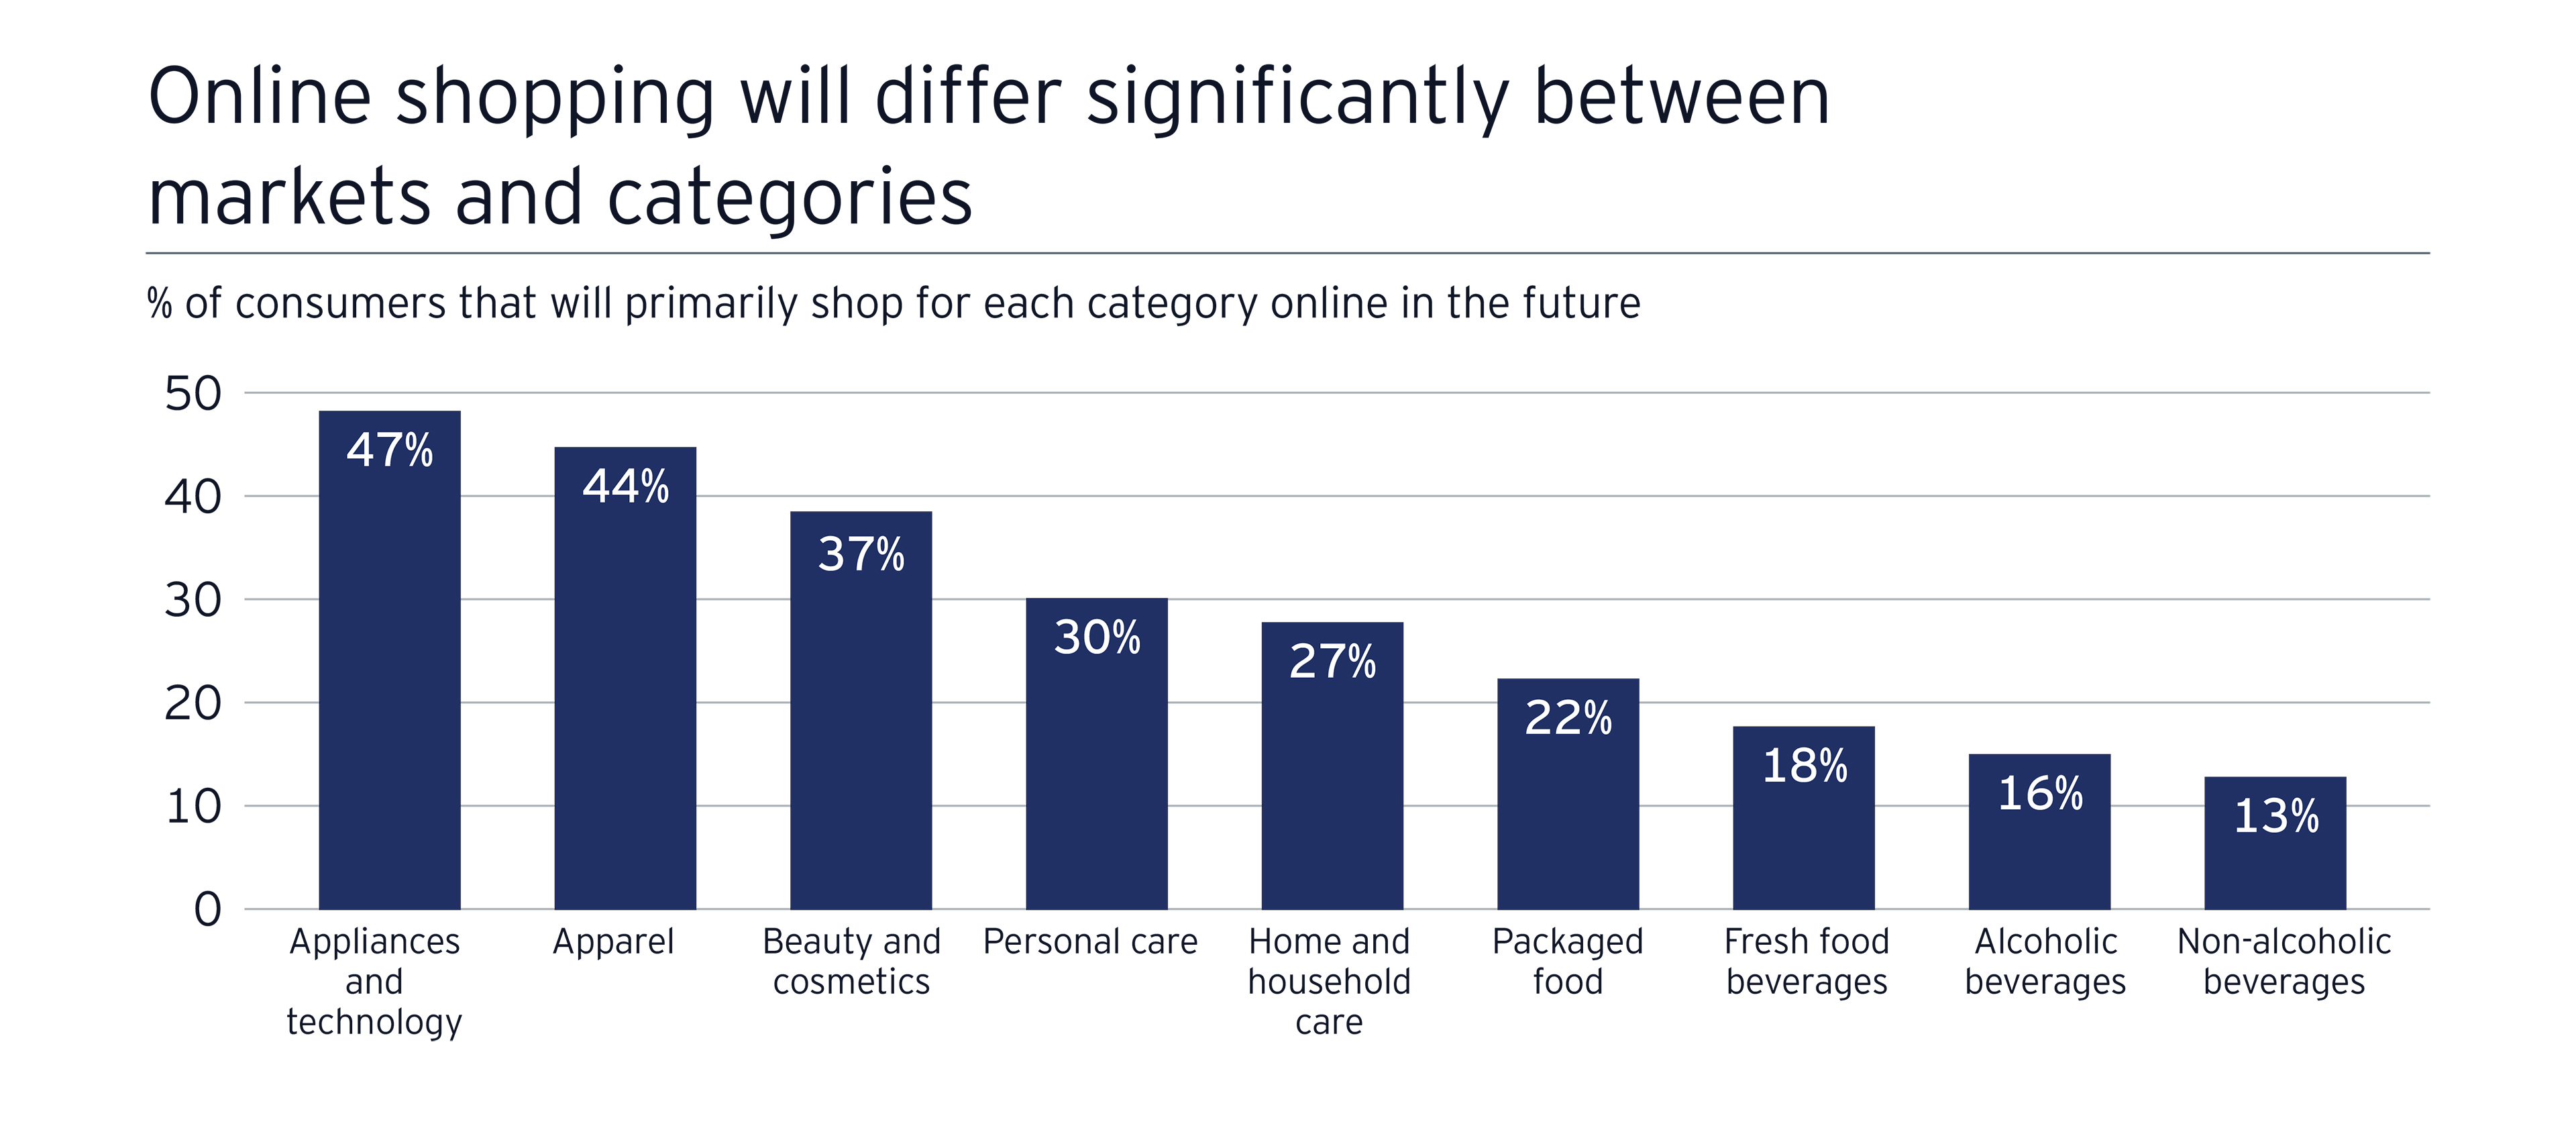 EY - Online shopping will differ